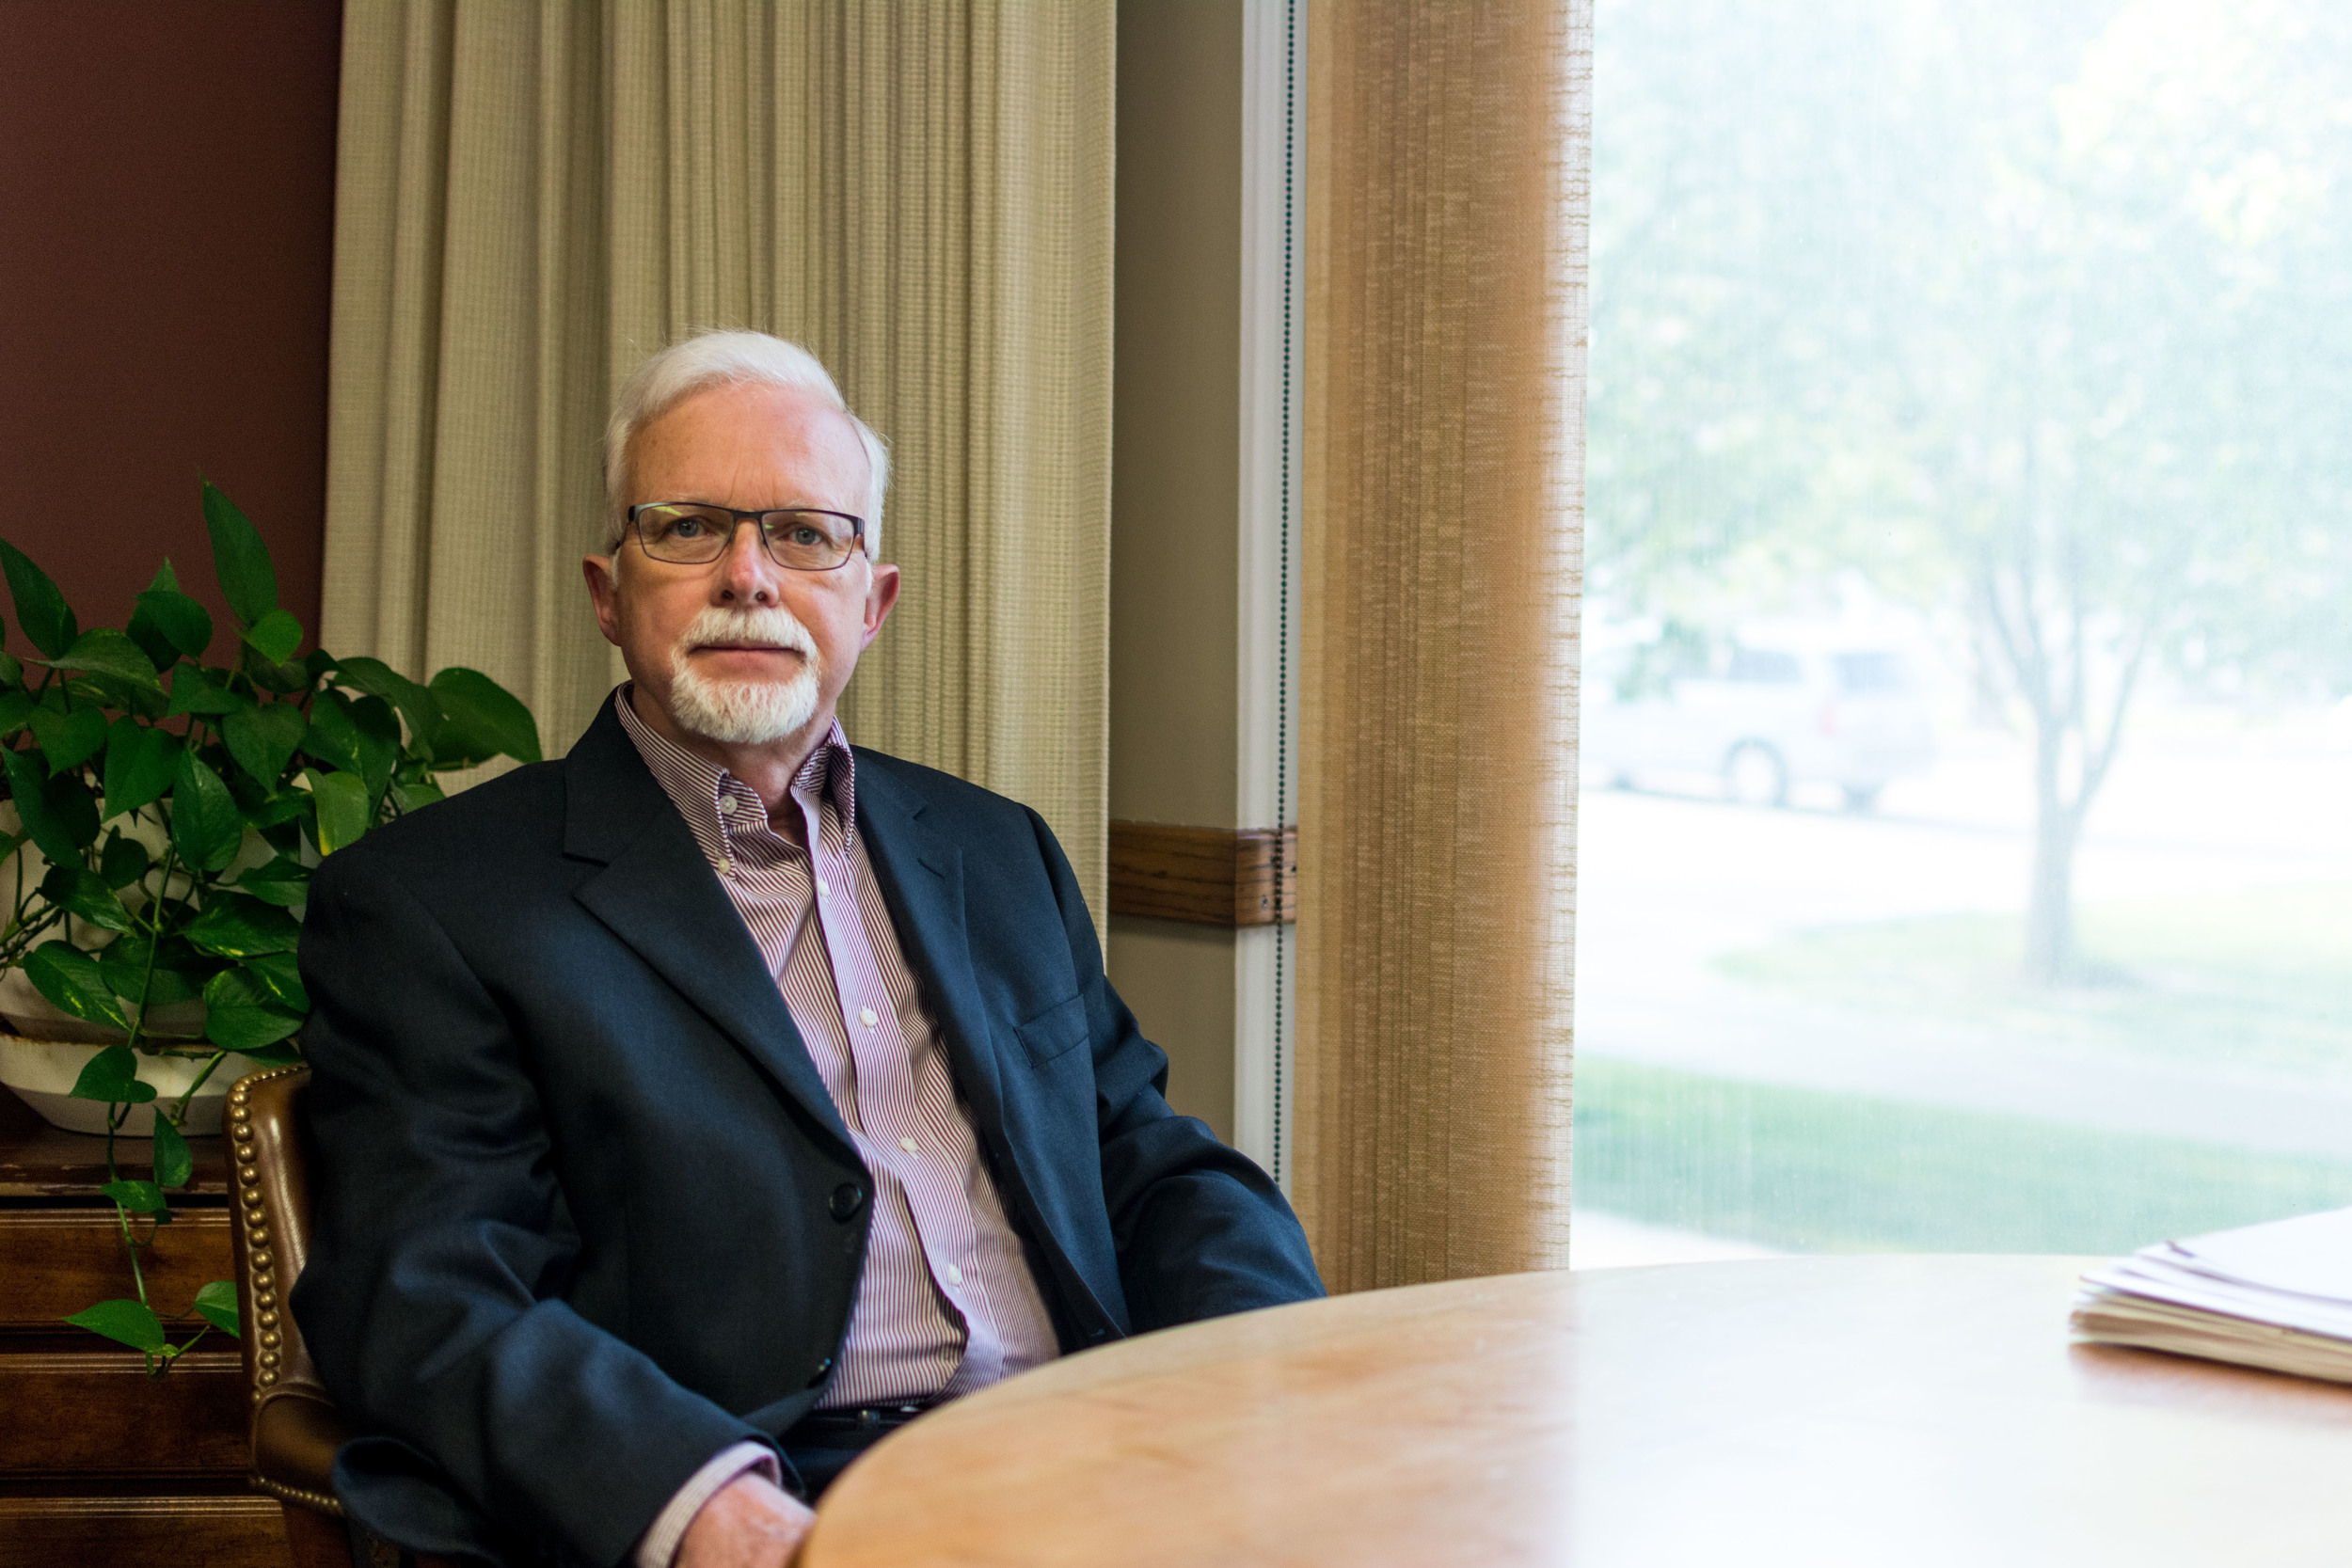 Dr. Russell may be missed on Union's campus, but he will not be forgotten // Zach Morrison